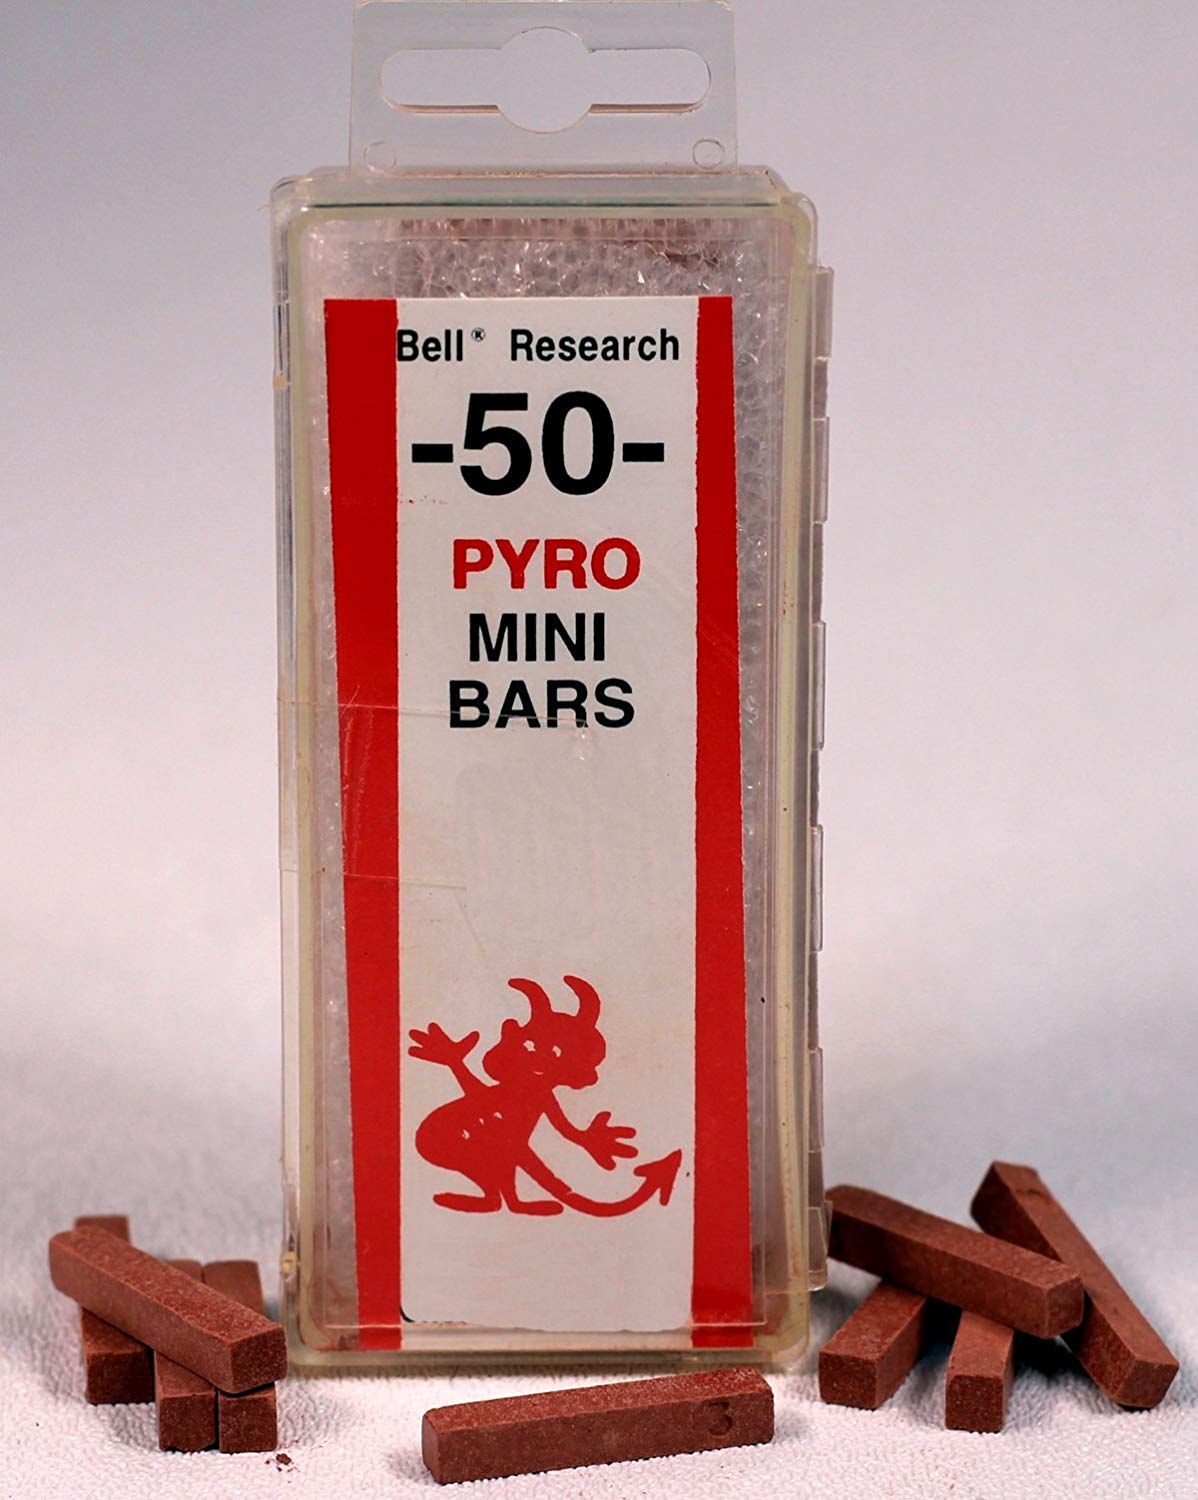 Cone 022 ORTON BRB PYROMETRIC BAR CONES FOR CERAMIC KILNS Box of 50